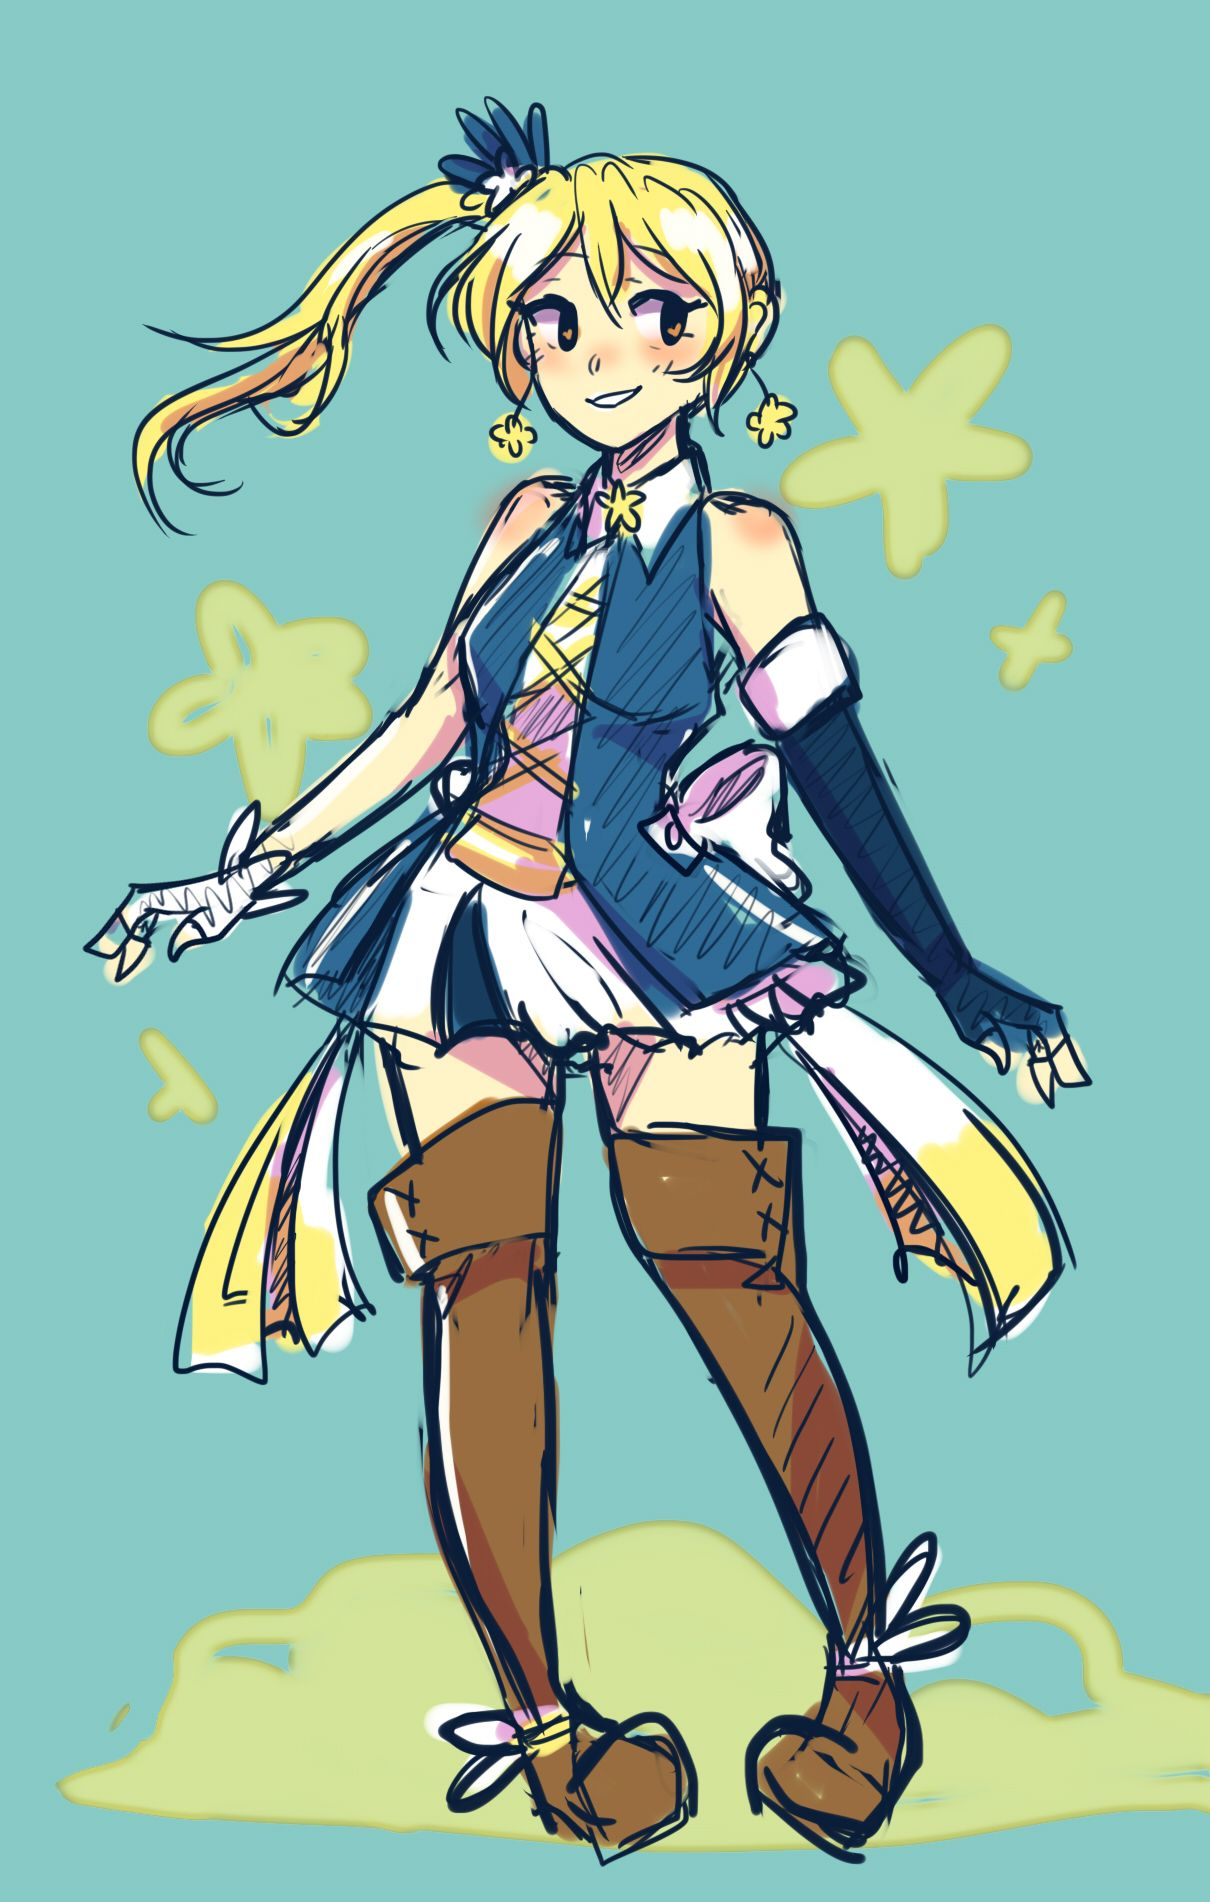 So hear me out here, like fairy tail but like with magical